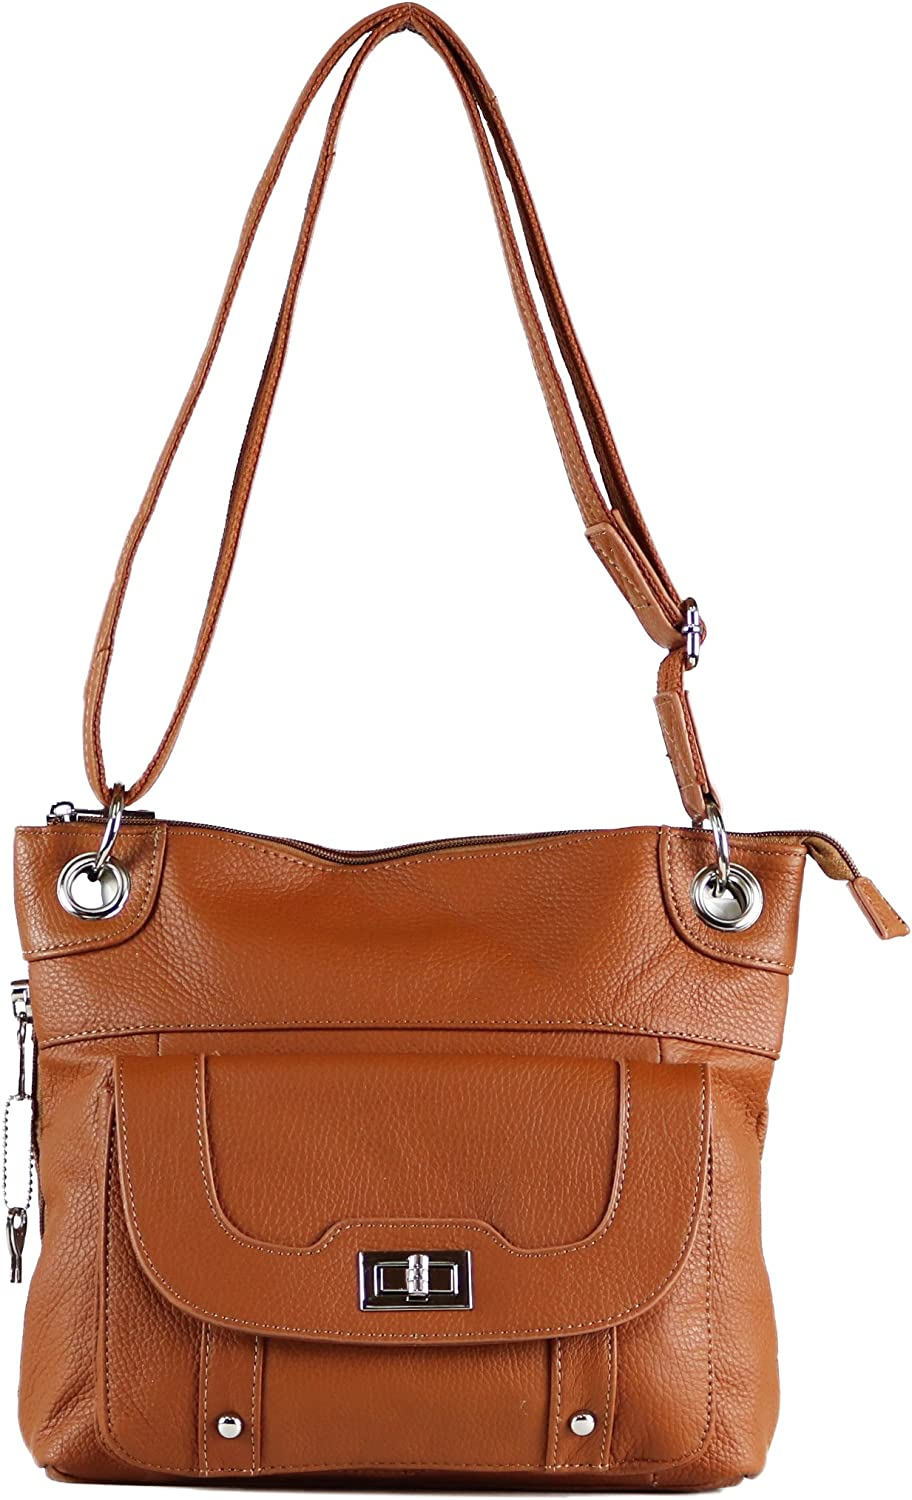 Concealed Carry Gun Purse...